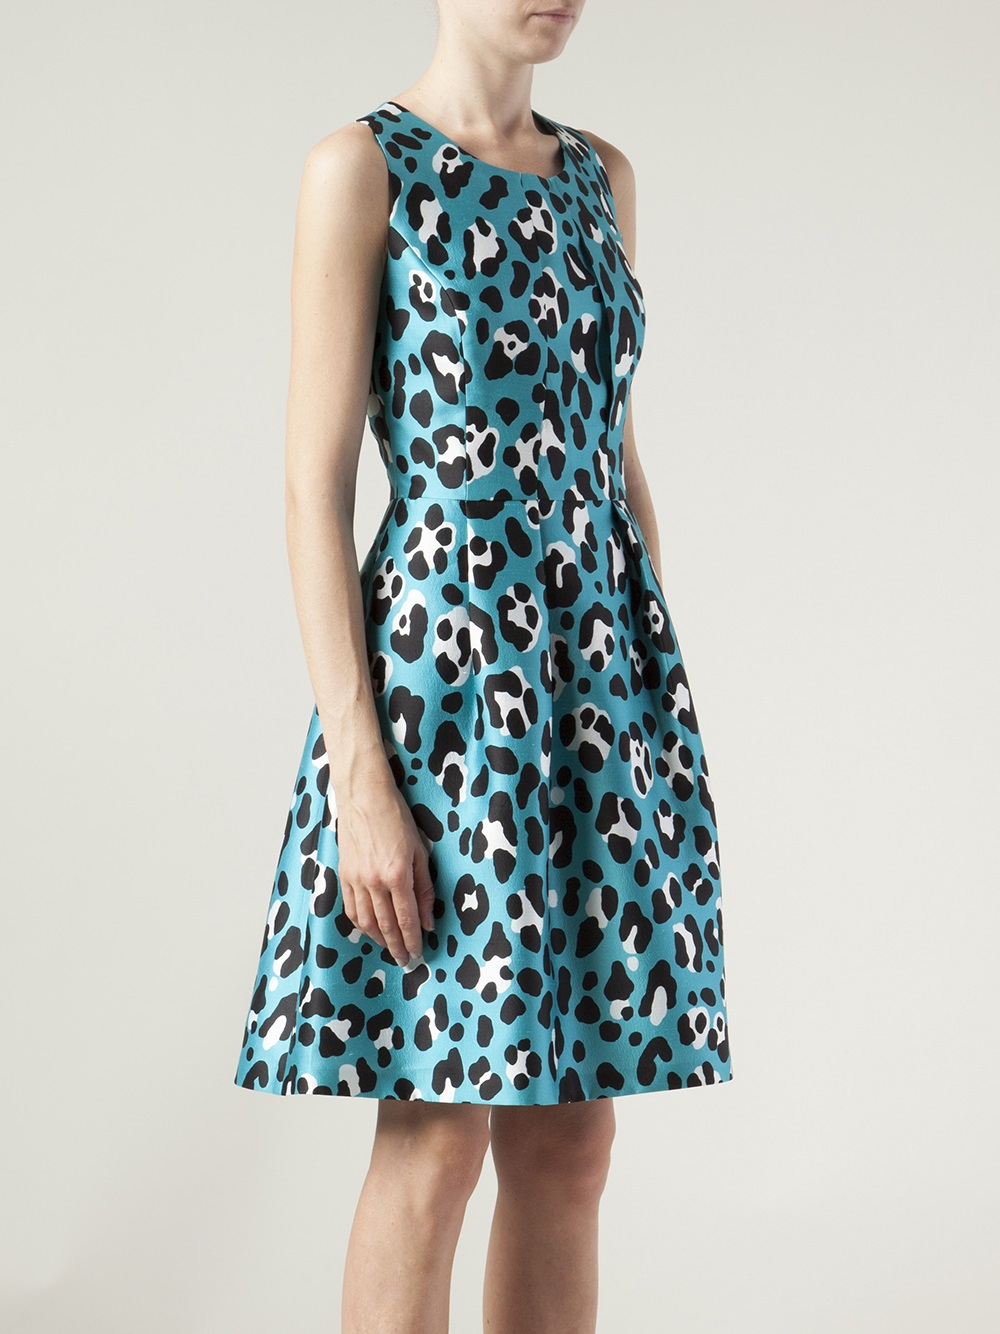 Michael kors Animalprint Bell Dress in Blue  Lyst